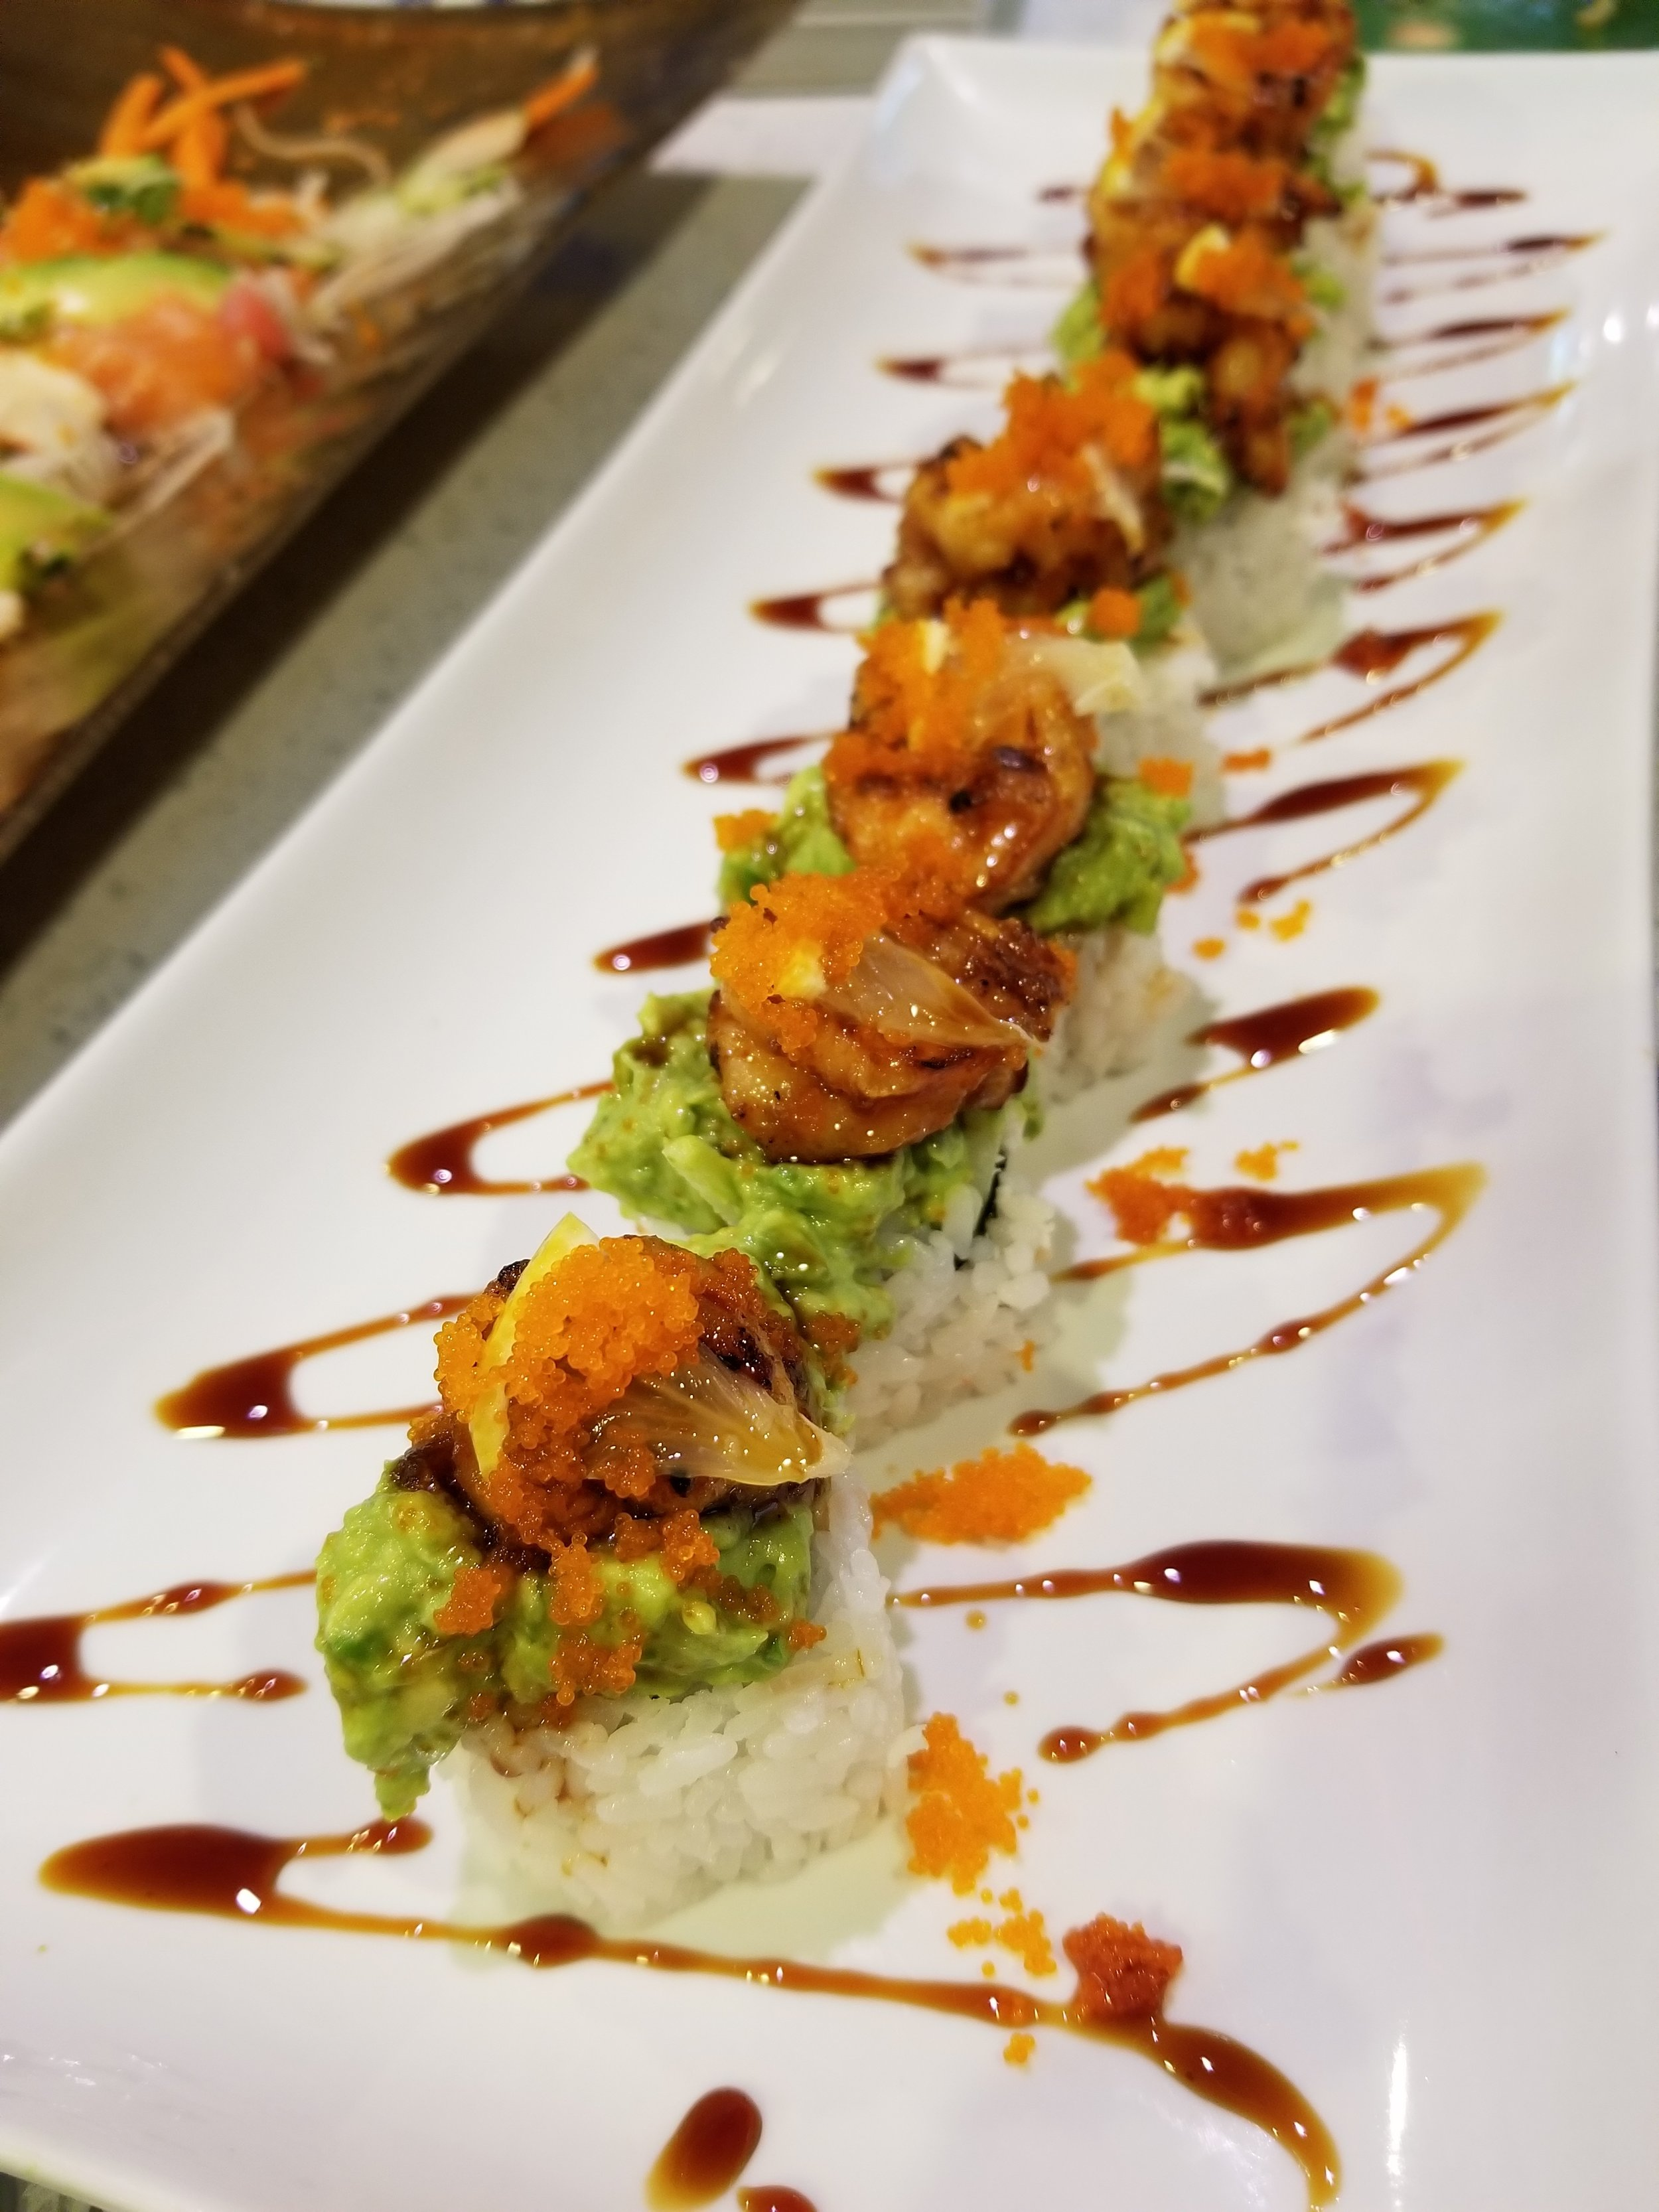 Waka Waka - This is like a FIESTA in your mouth! You've got spicy grilled shrimp on top of a beautiful mound of